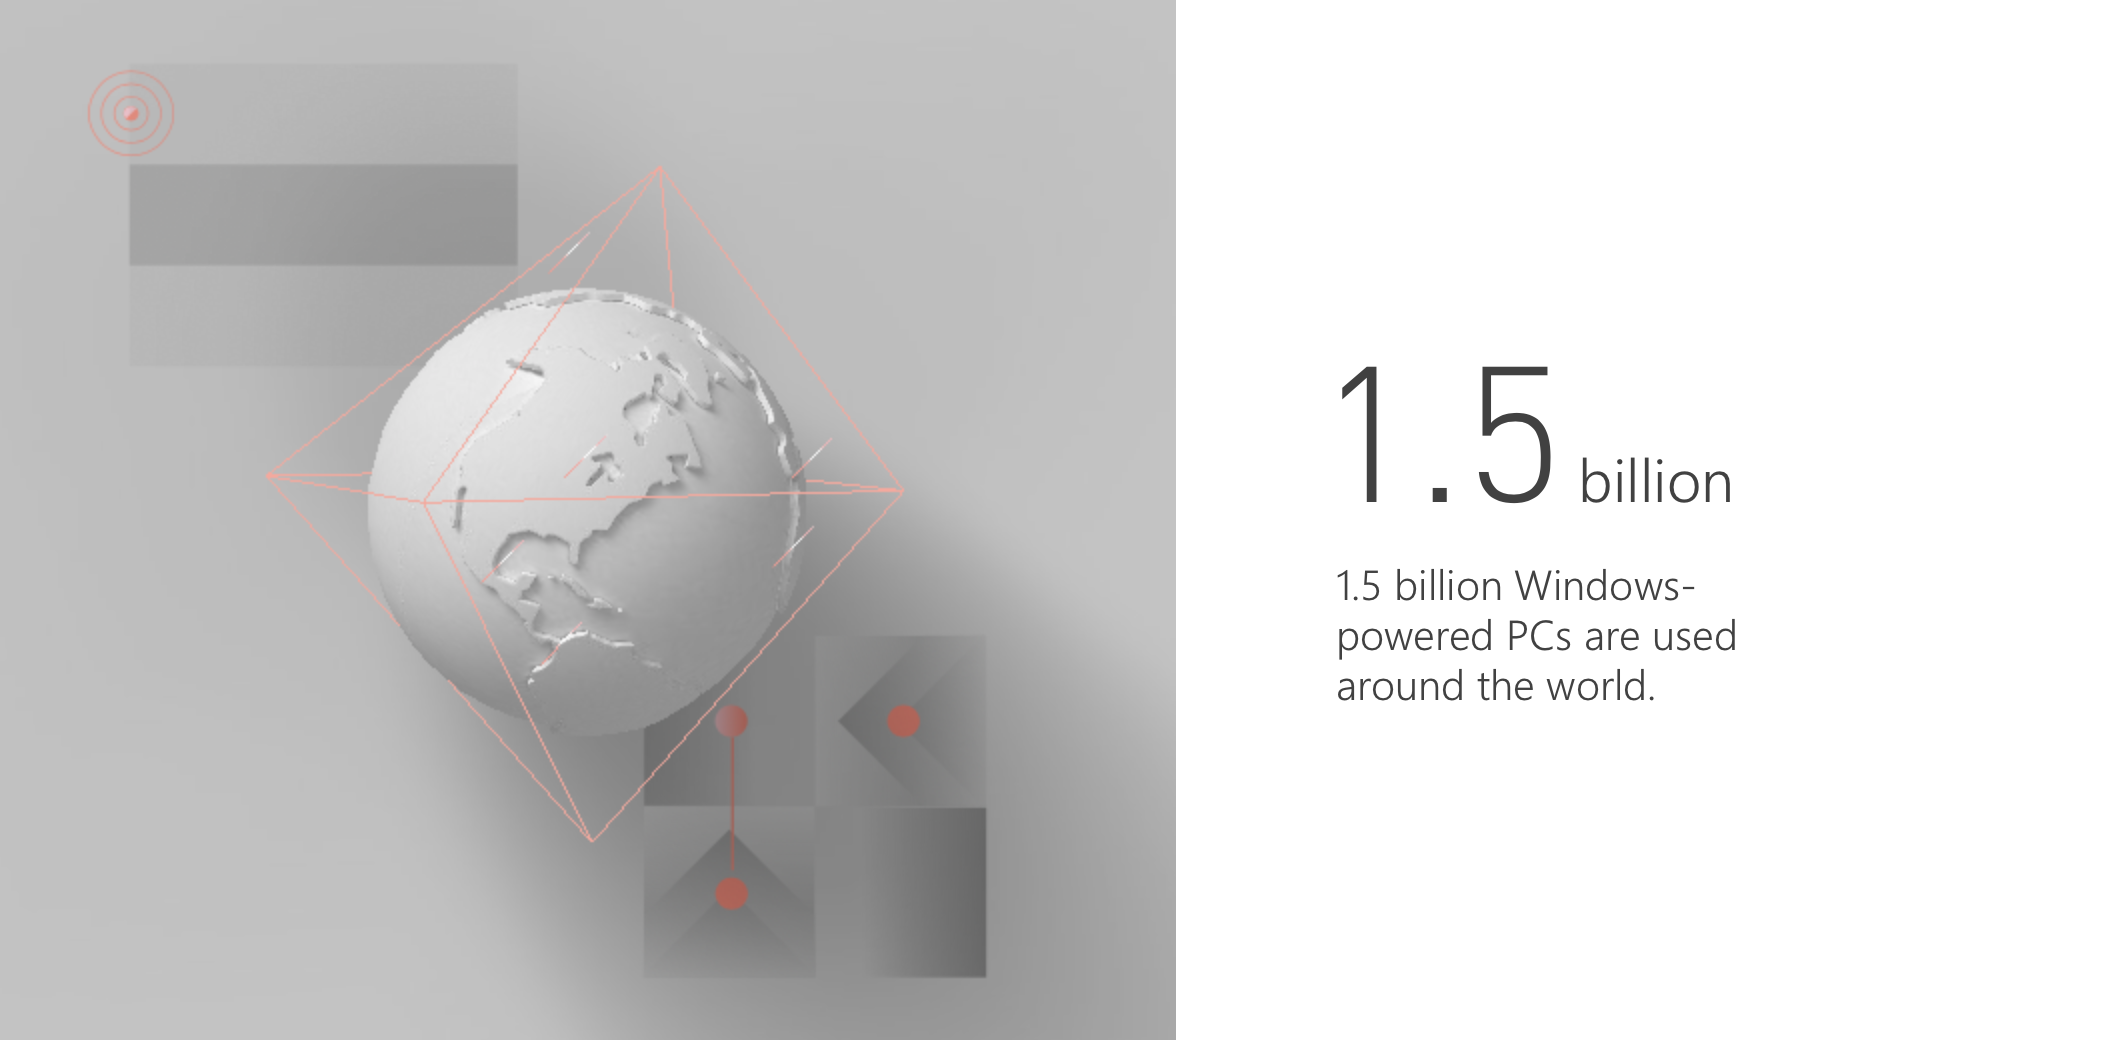 microsoft windows 1.5 billion pcs